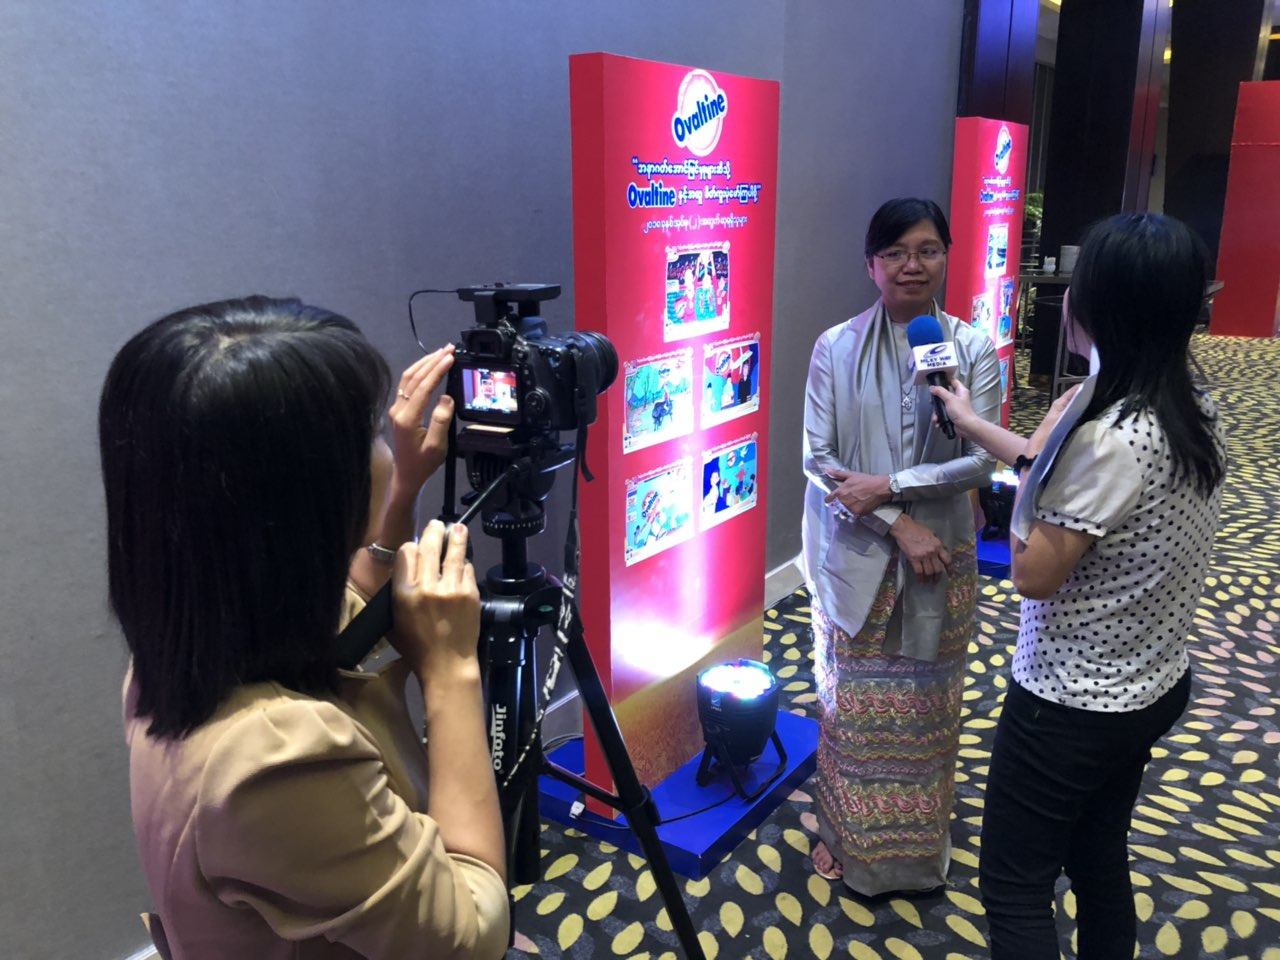 Media Interview with Daw Khin Mar Swe, Deputy Director General from Department of Basic Education Under Yangon Region Educaiton Office